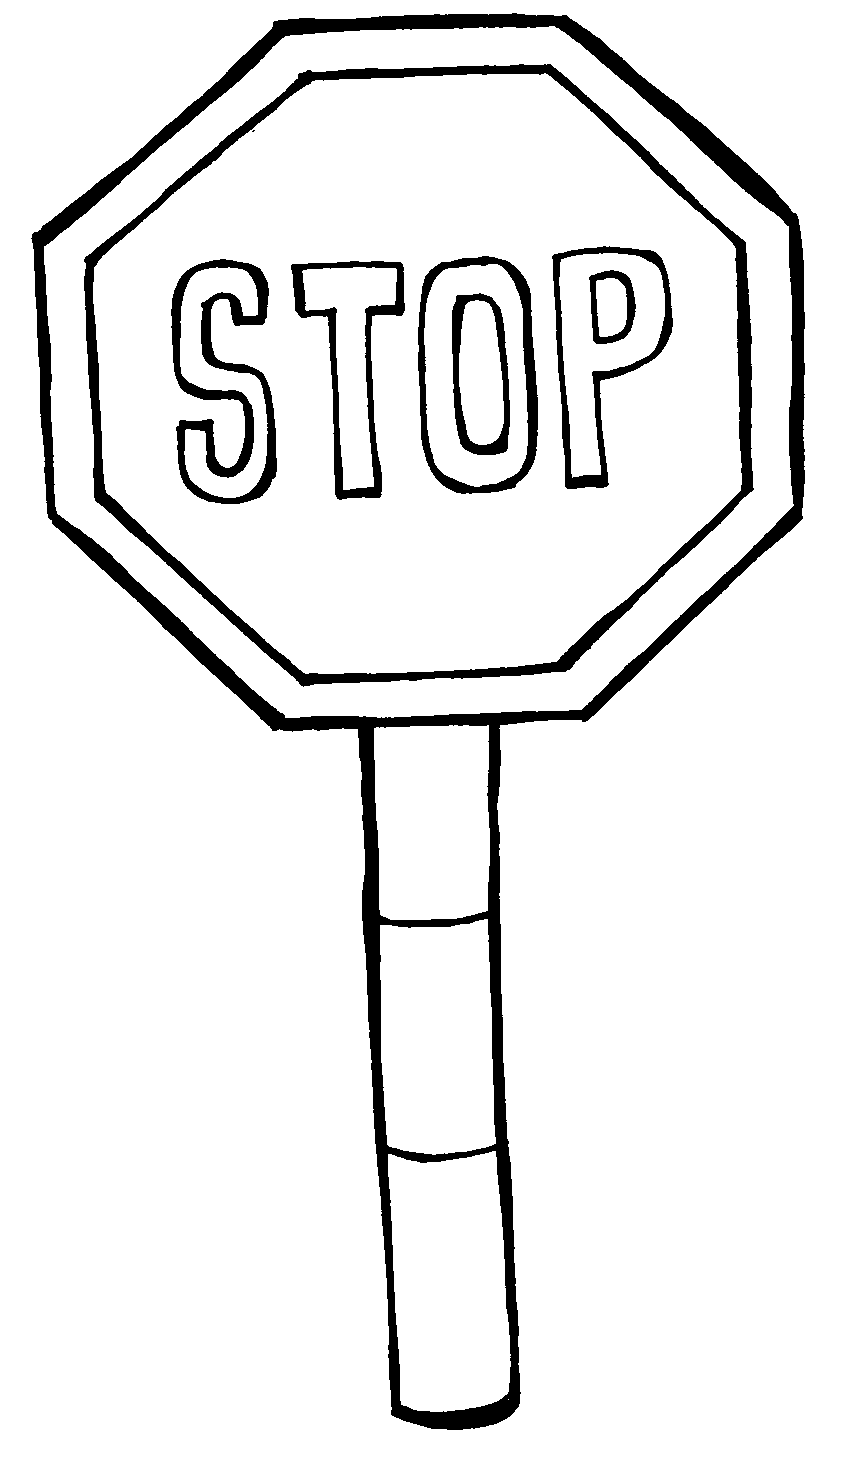 stop sign coloring pages - photo#12